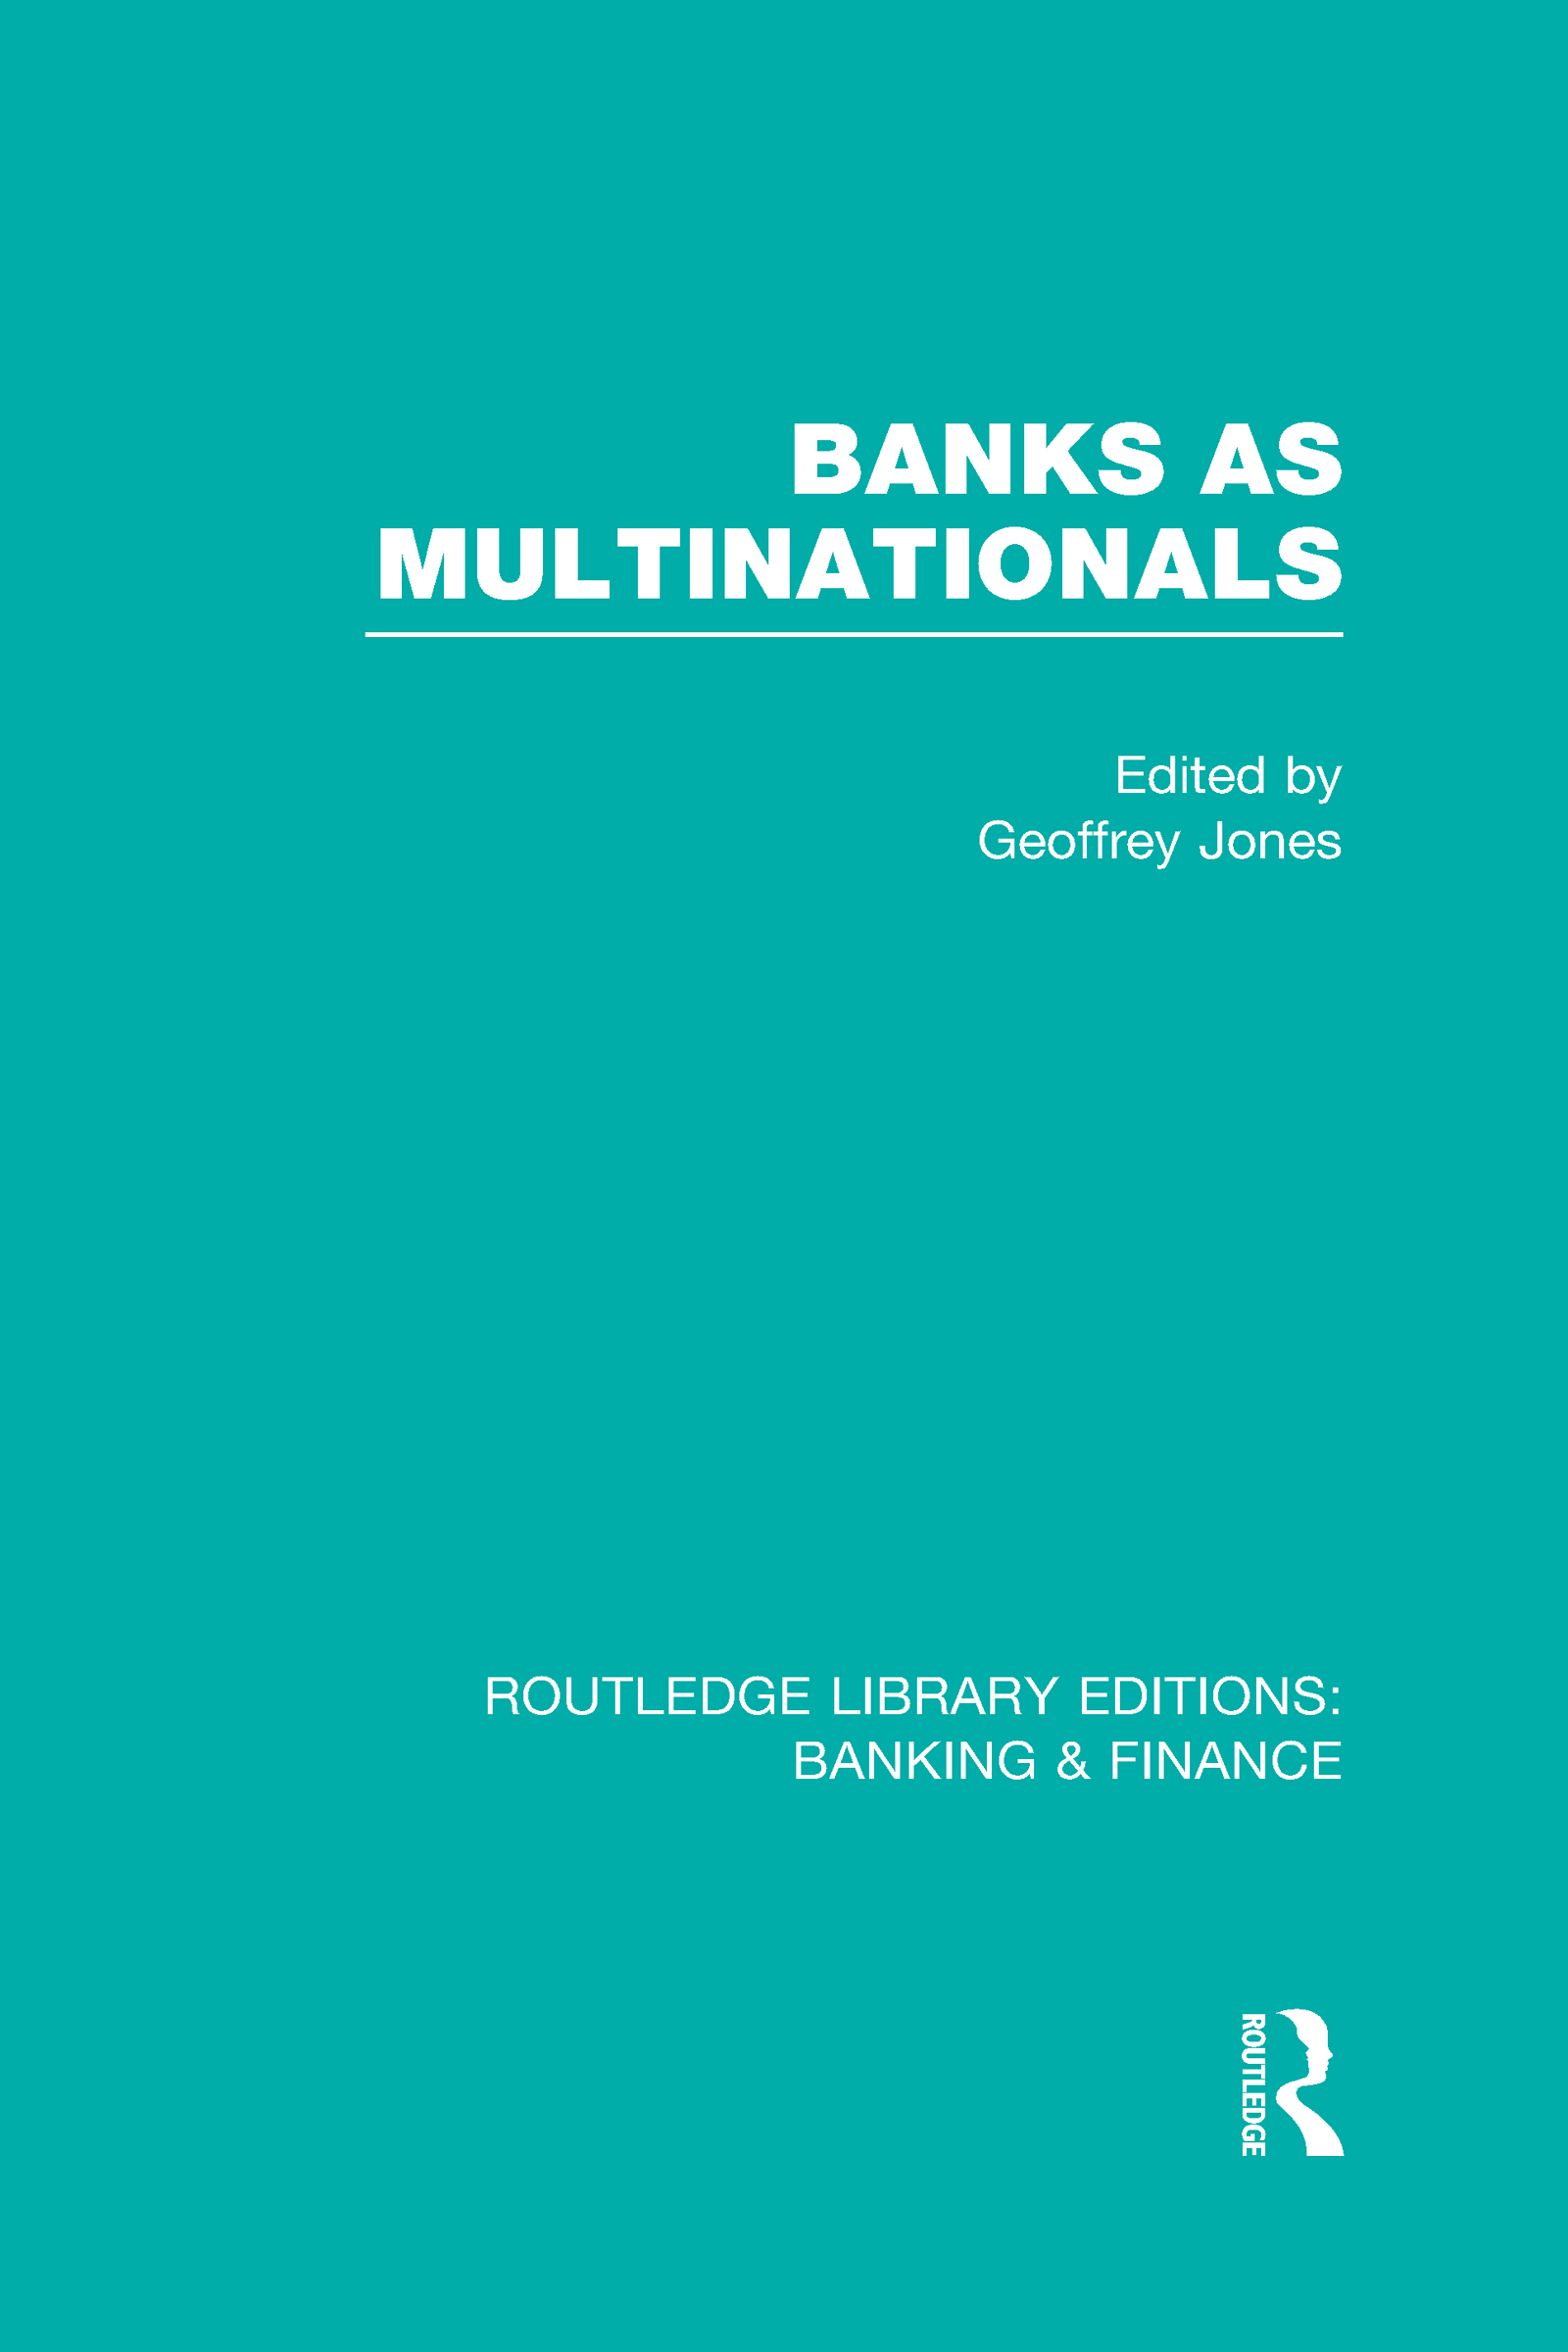 Banks as Multinationals (RLE Banking & Finance) (Hardback) book cover